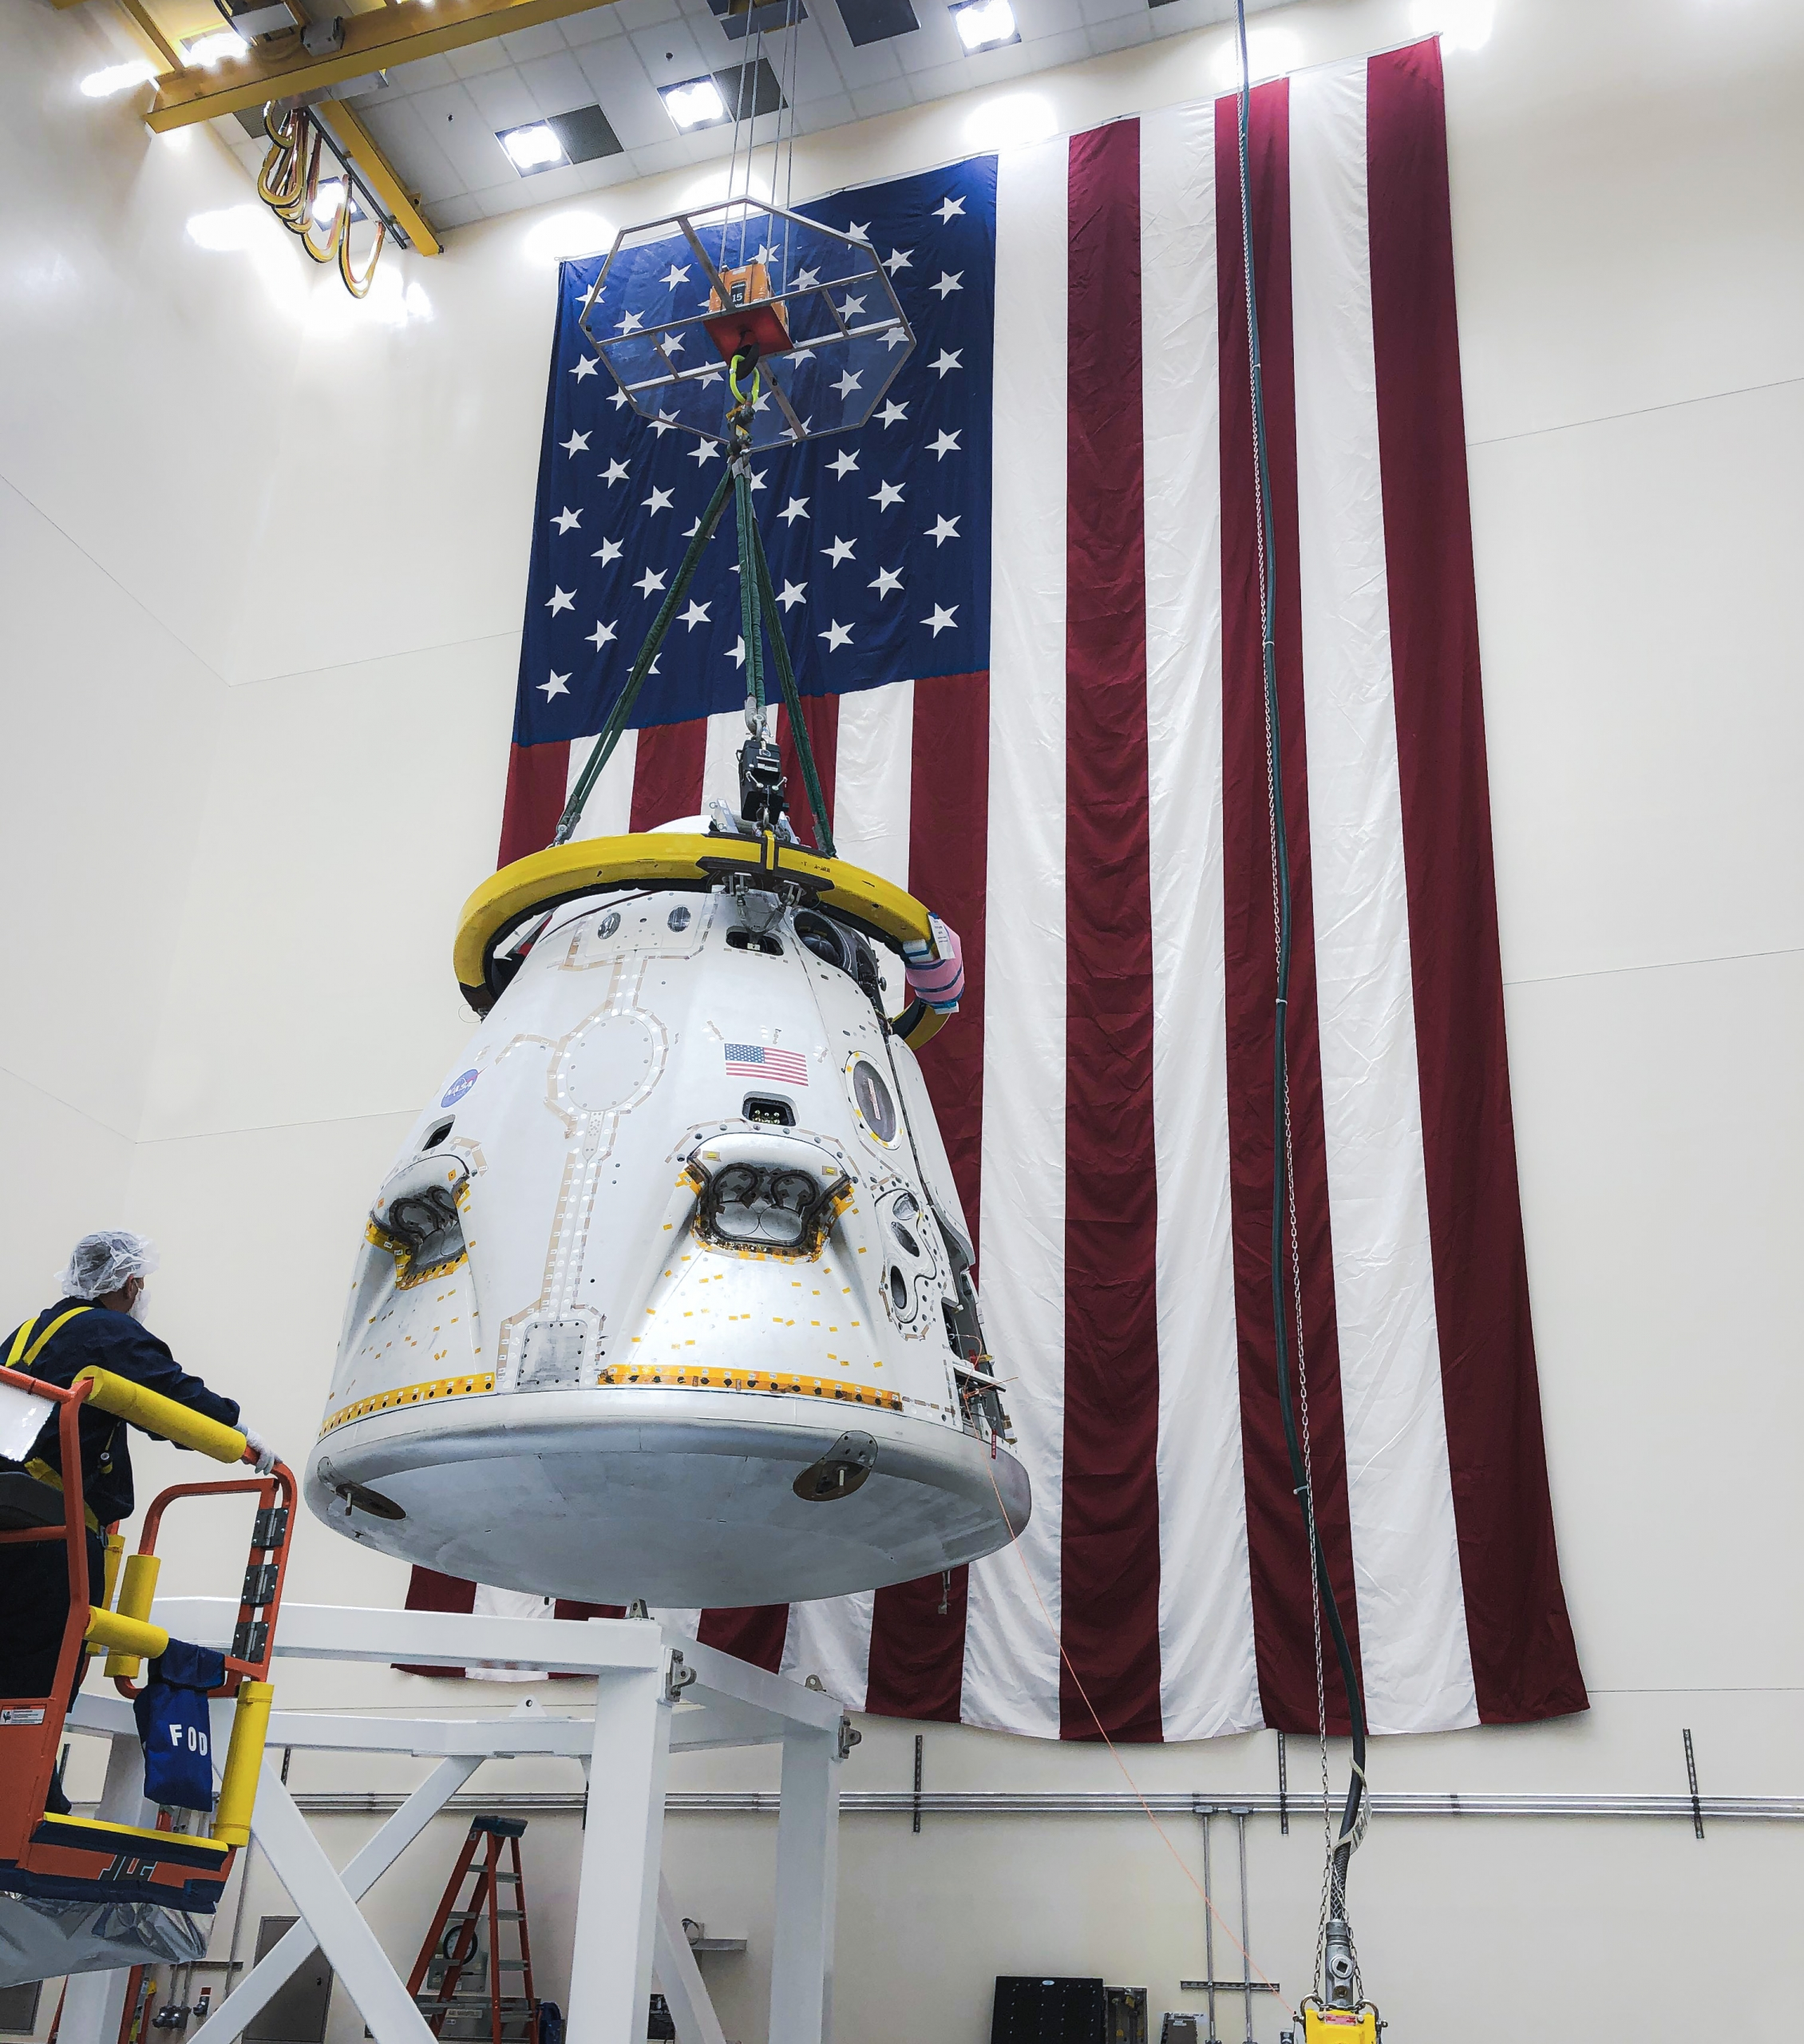 Rough seas delay escape test for SpaceX crew capsule